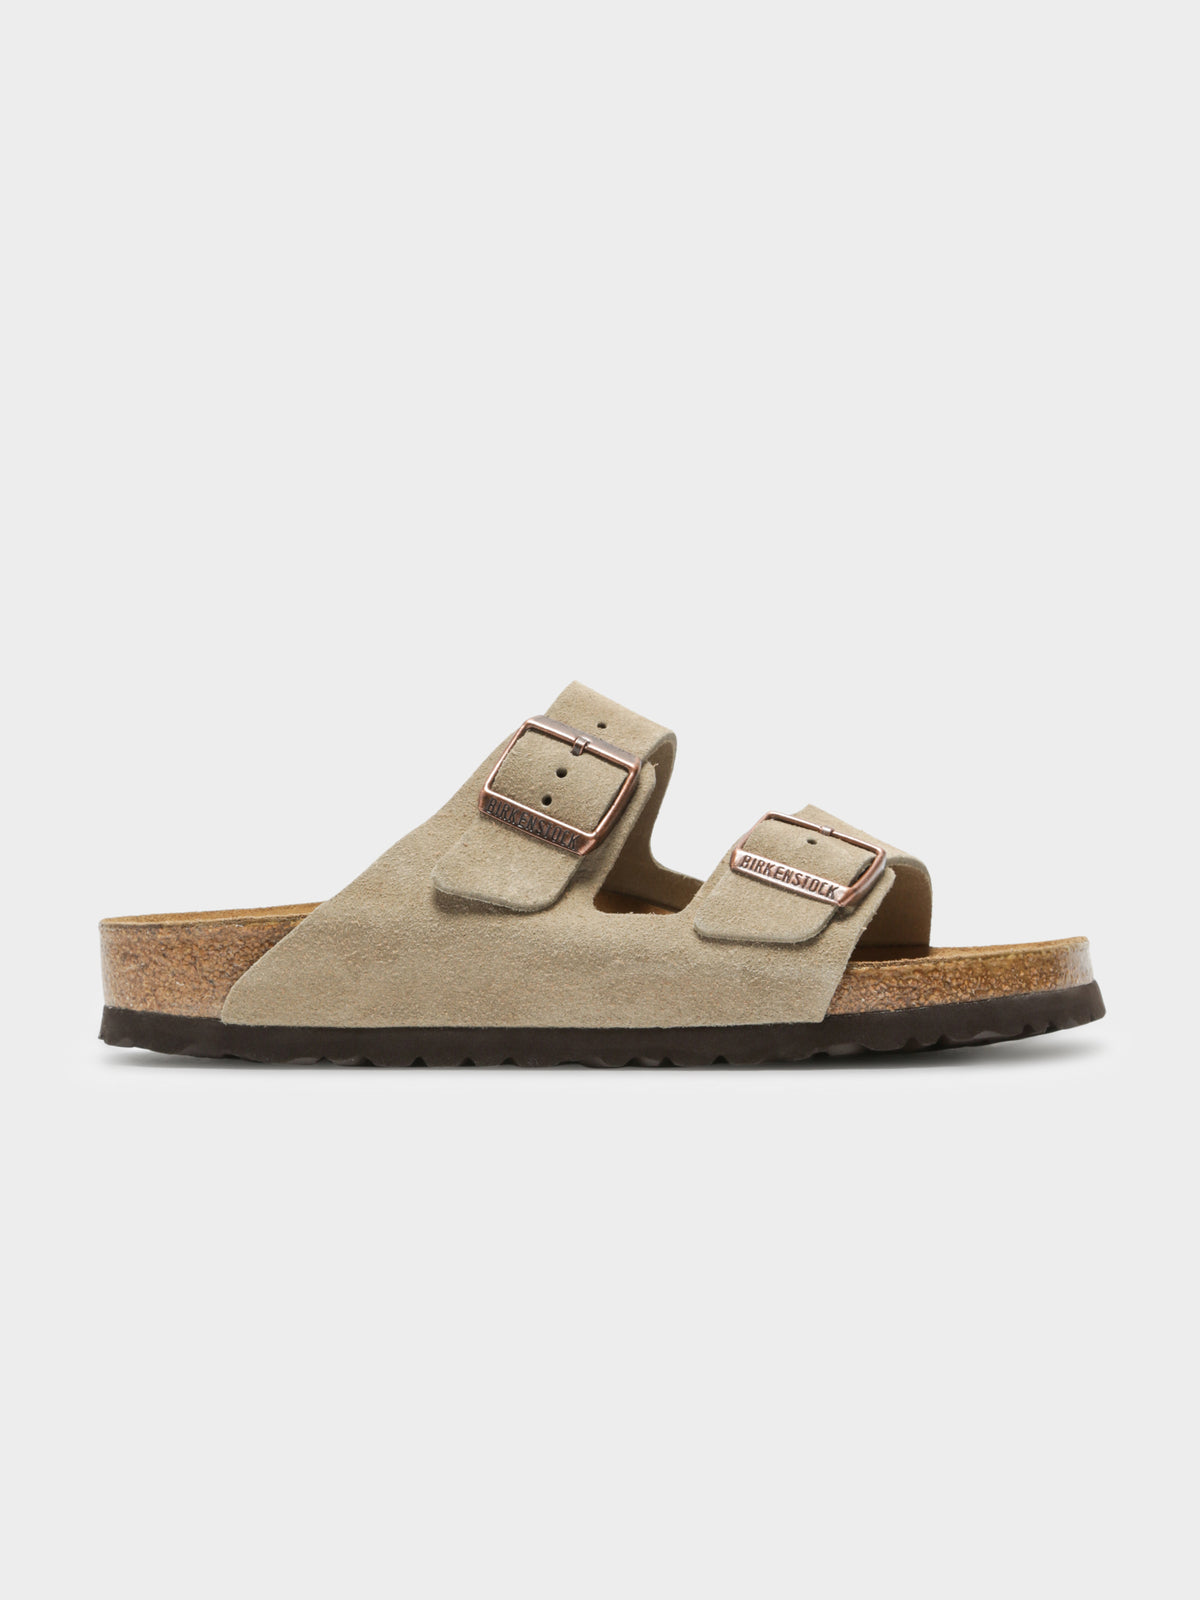 Unisex Arizona Two-Strap Sandals in Taupe Suede